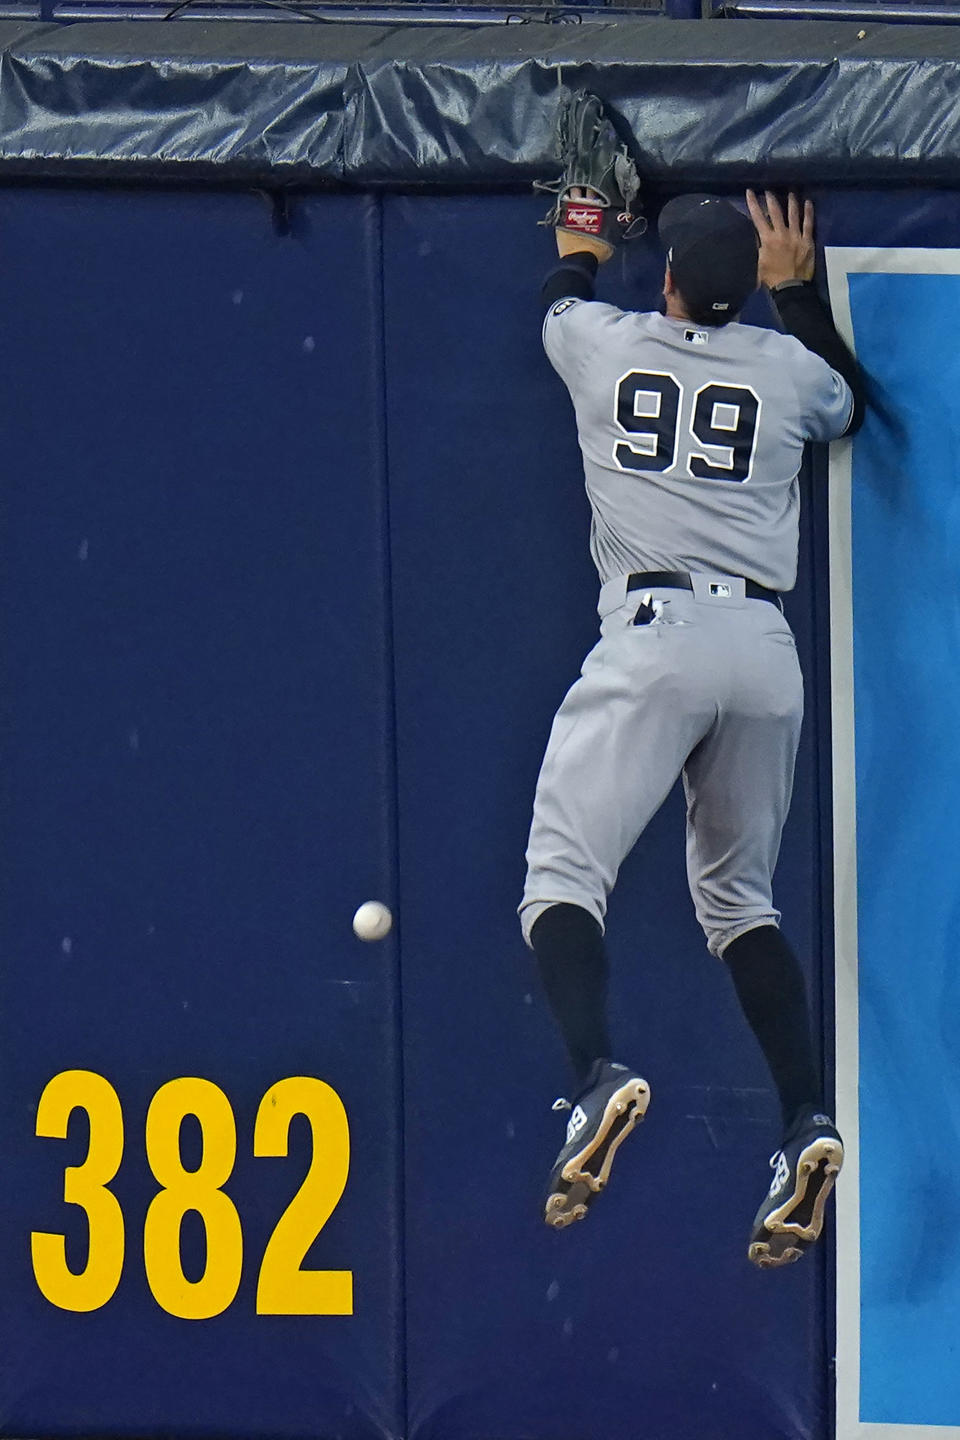 New York Yankees right fielder Aaron Judge can't get a double by Tampa Bay Rays' Austin Meadows during the fifth inning of a baseball game Thursday, May 13, 2021, in St. Petersburg, Fla. (AP Photo/Chris O'Meara)